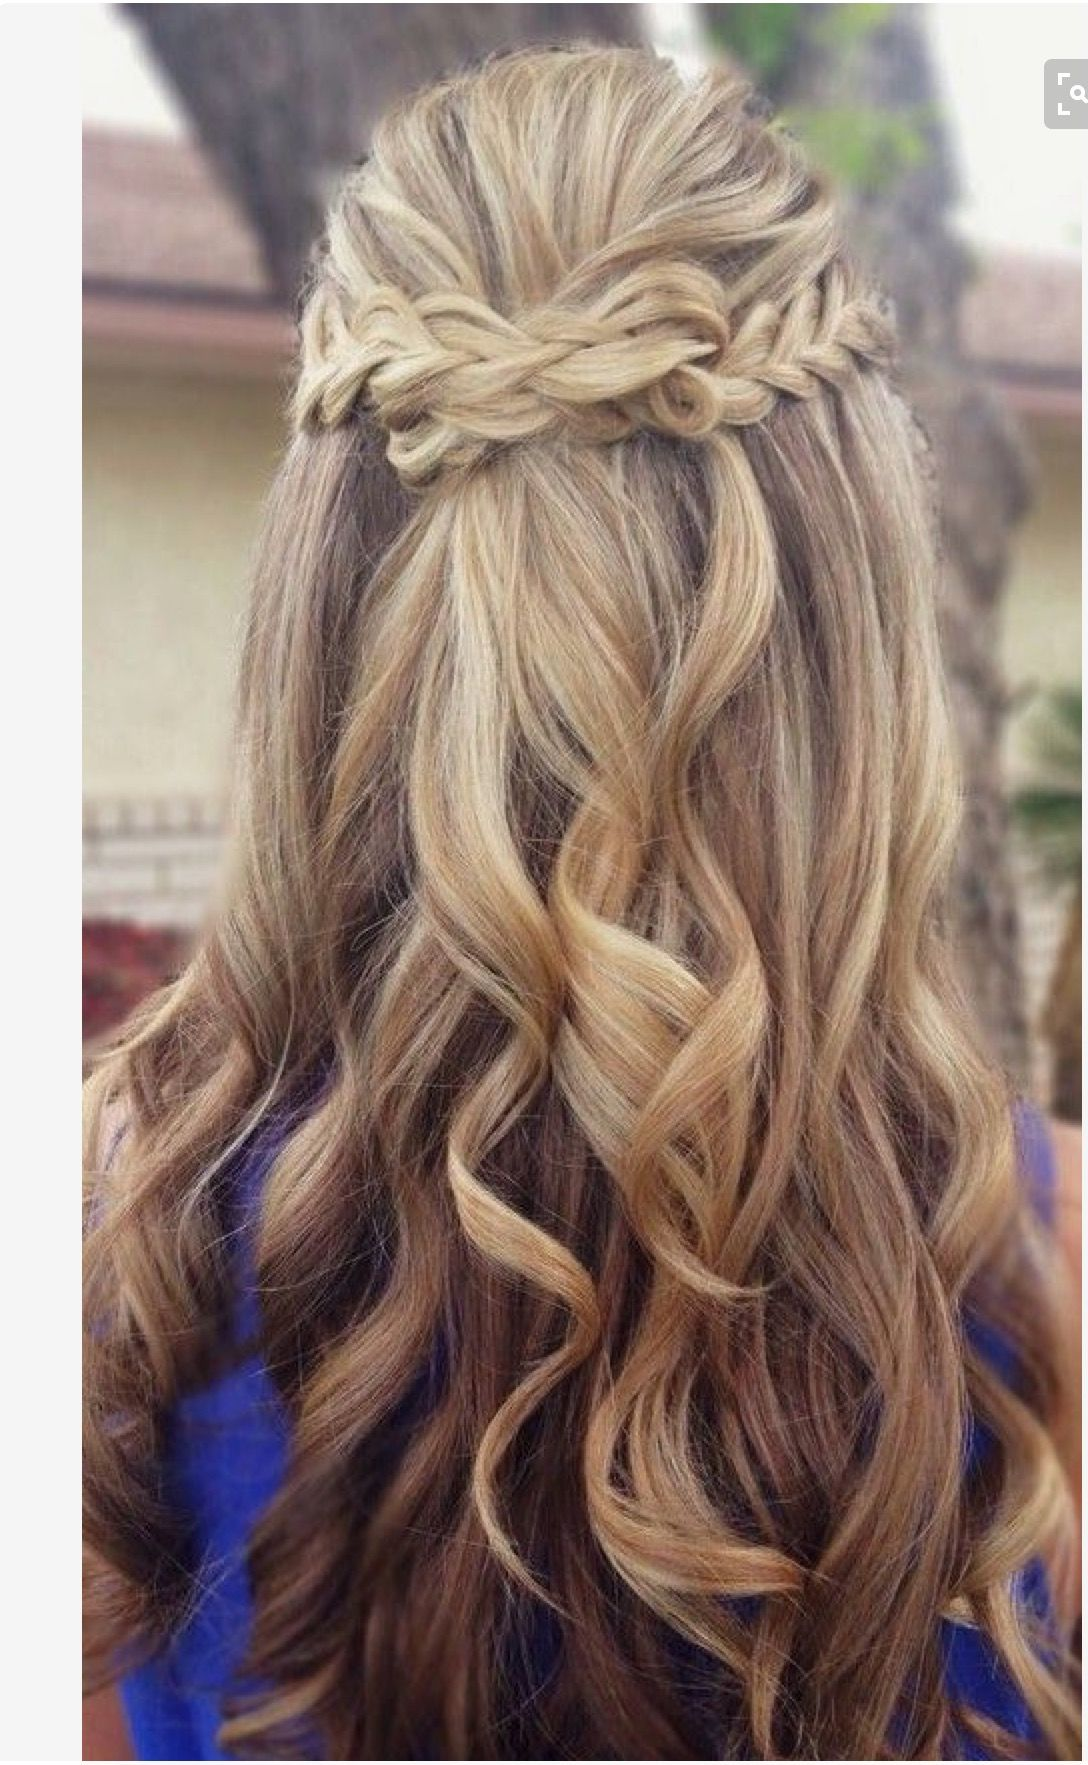 Long Hairstyles With Braids Braided Prom Hair Formsl Hair Pinterest Prom Hair And Prom